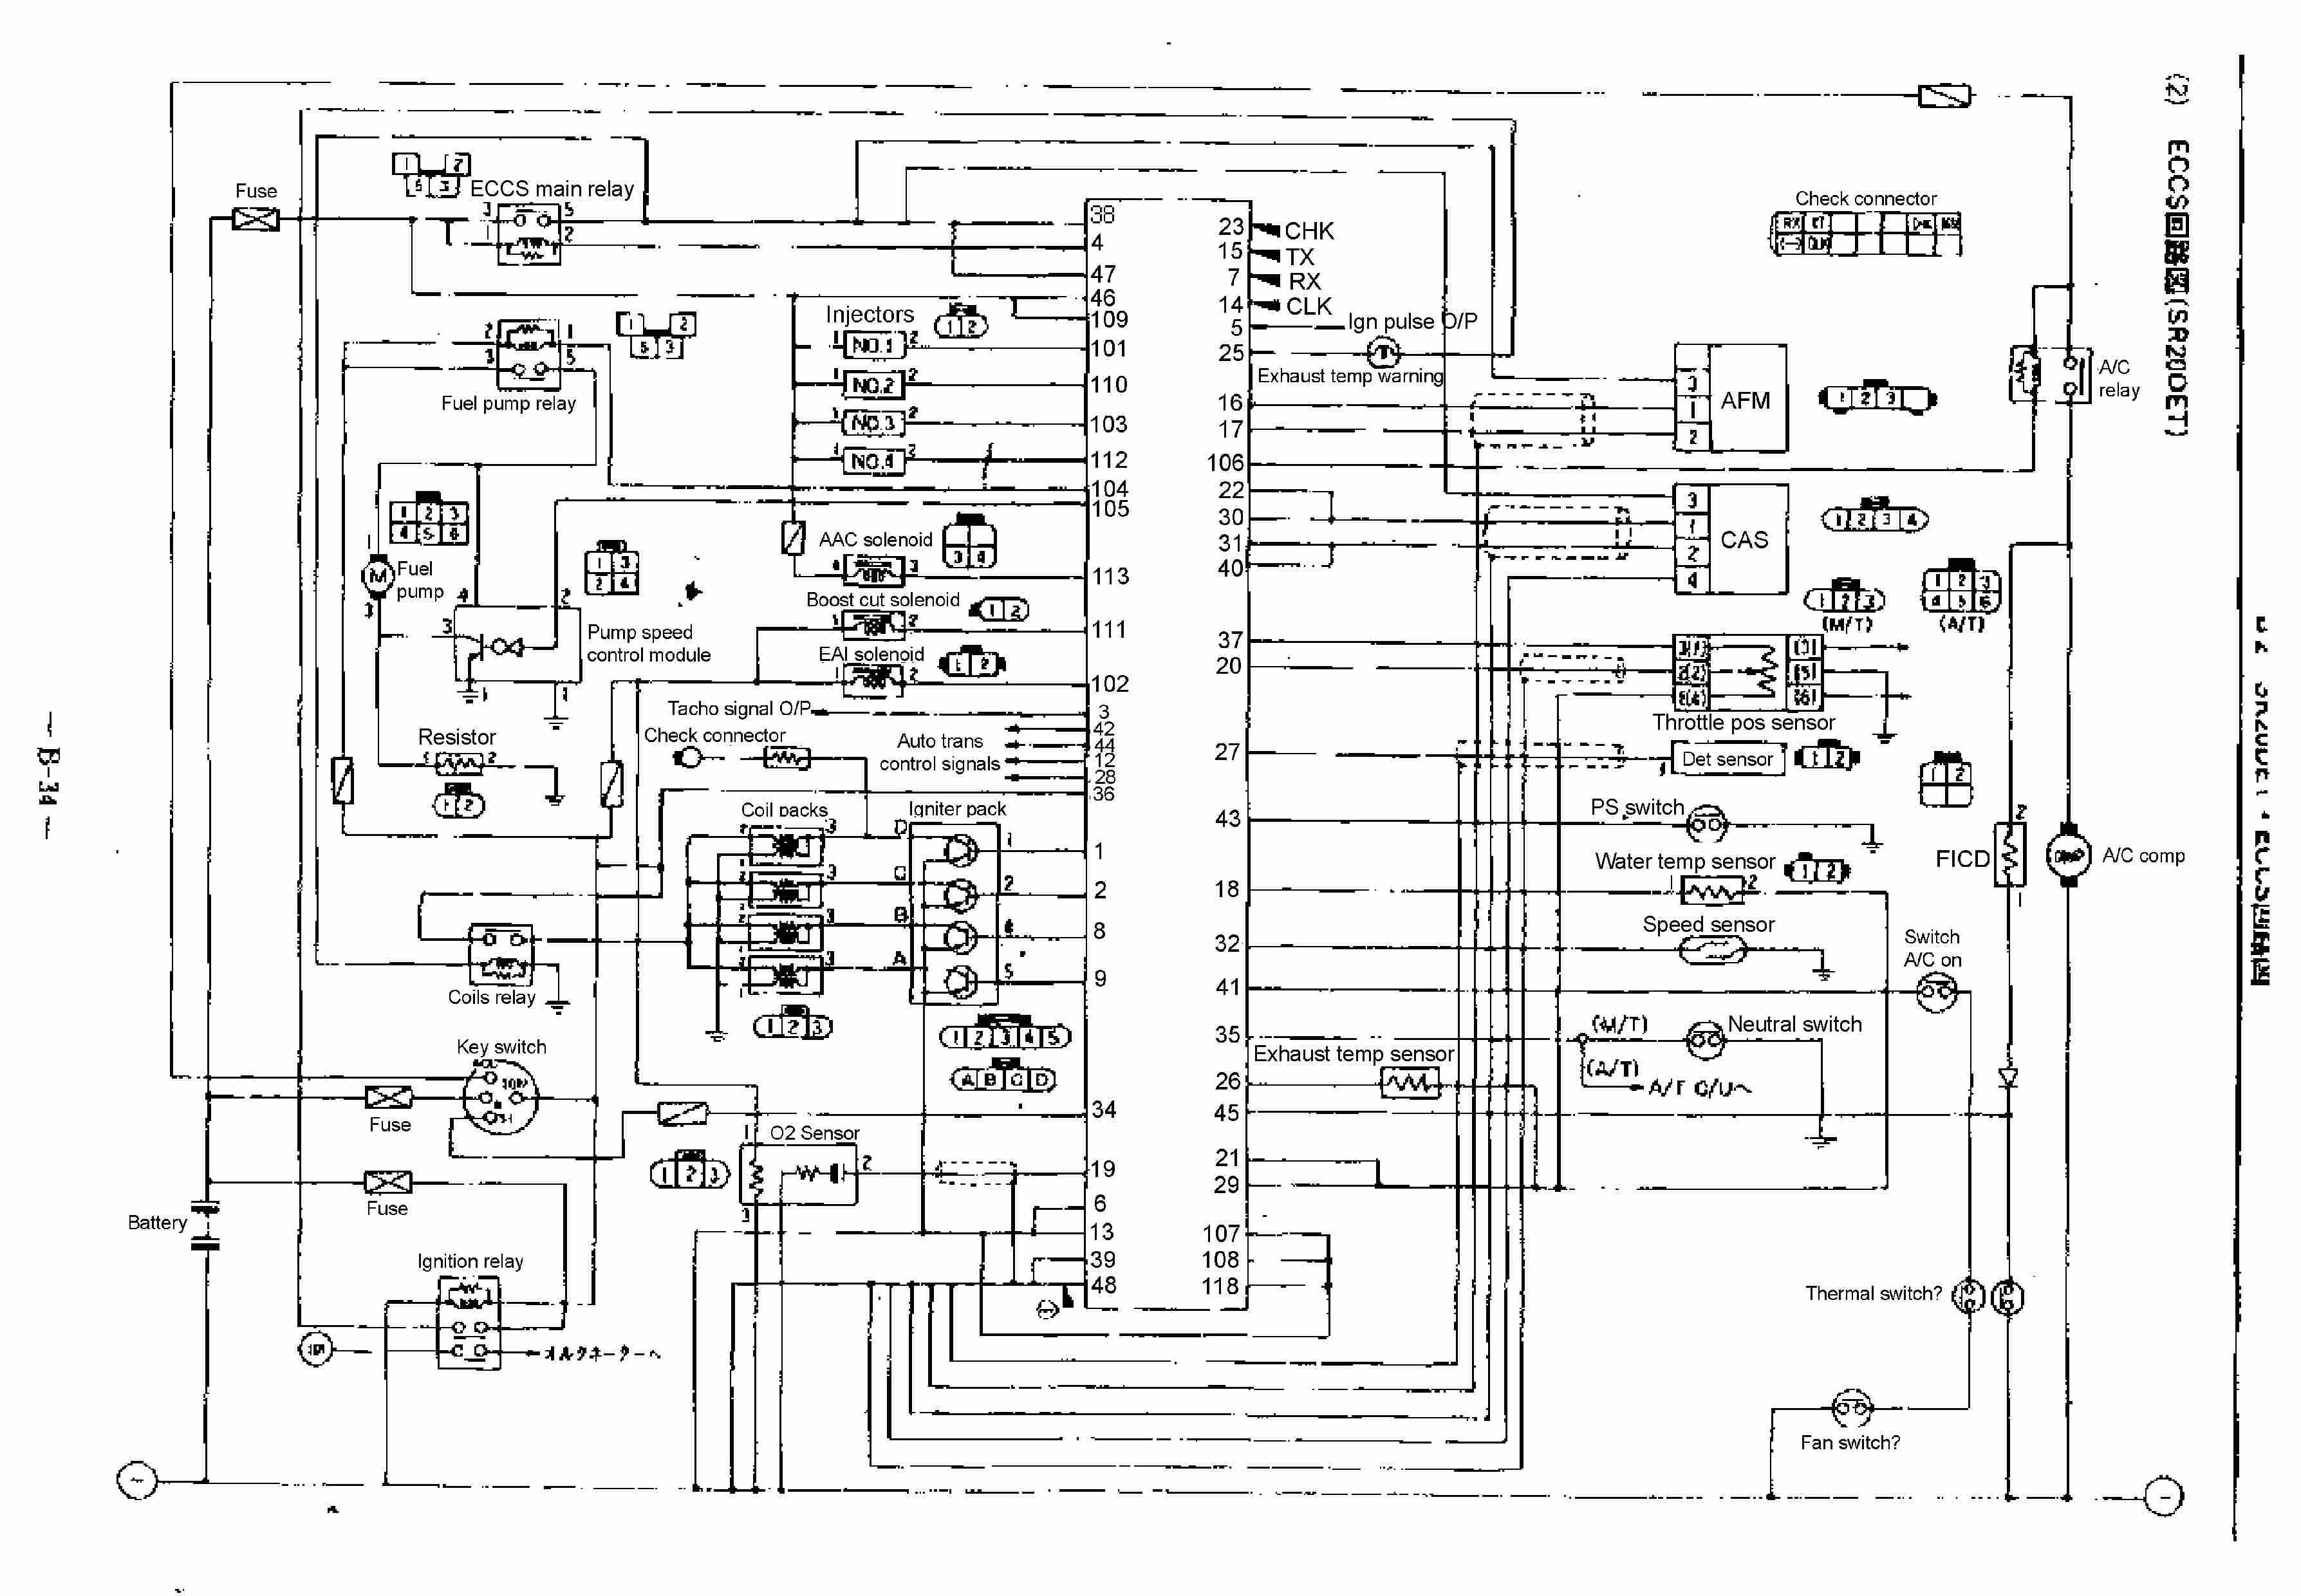 Allison Transmission 3000 And 4000 Wiring Diagram